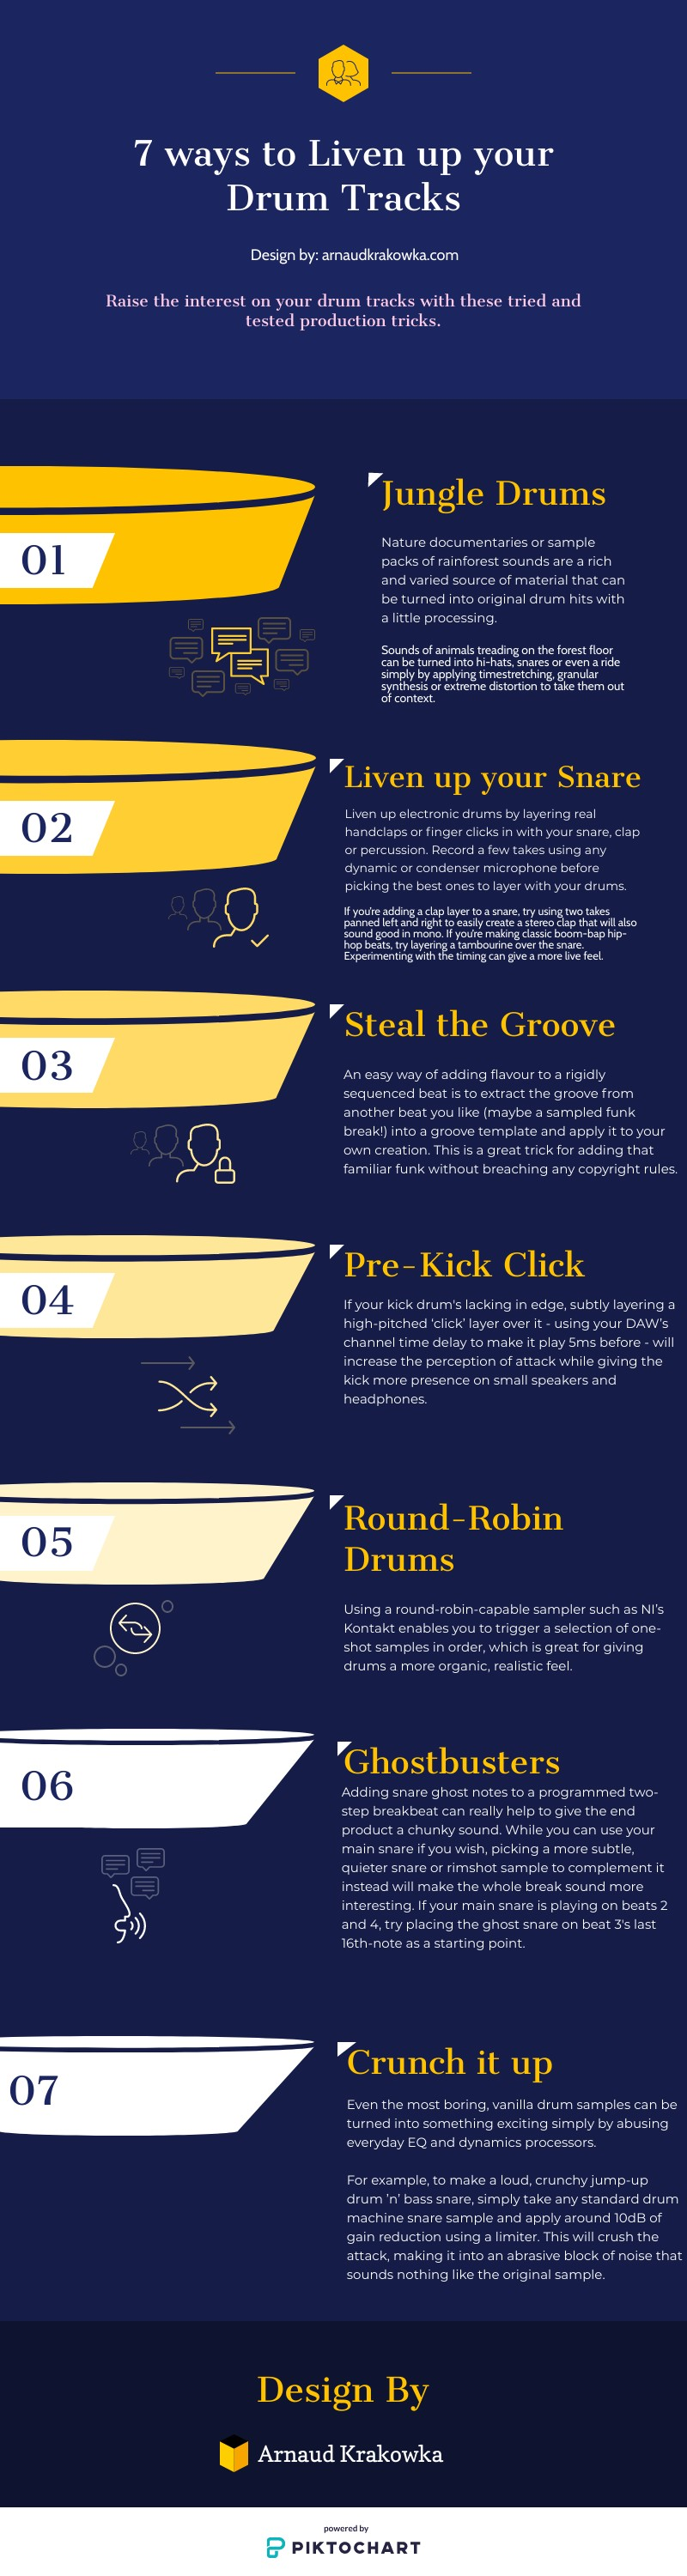 Top ways to liven up your drum tracks